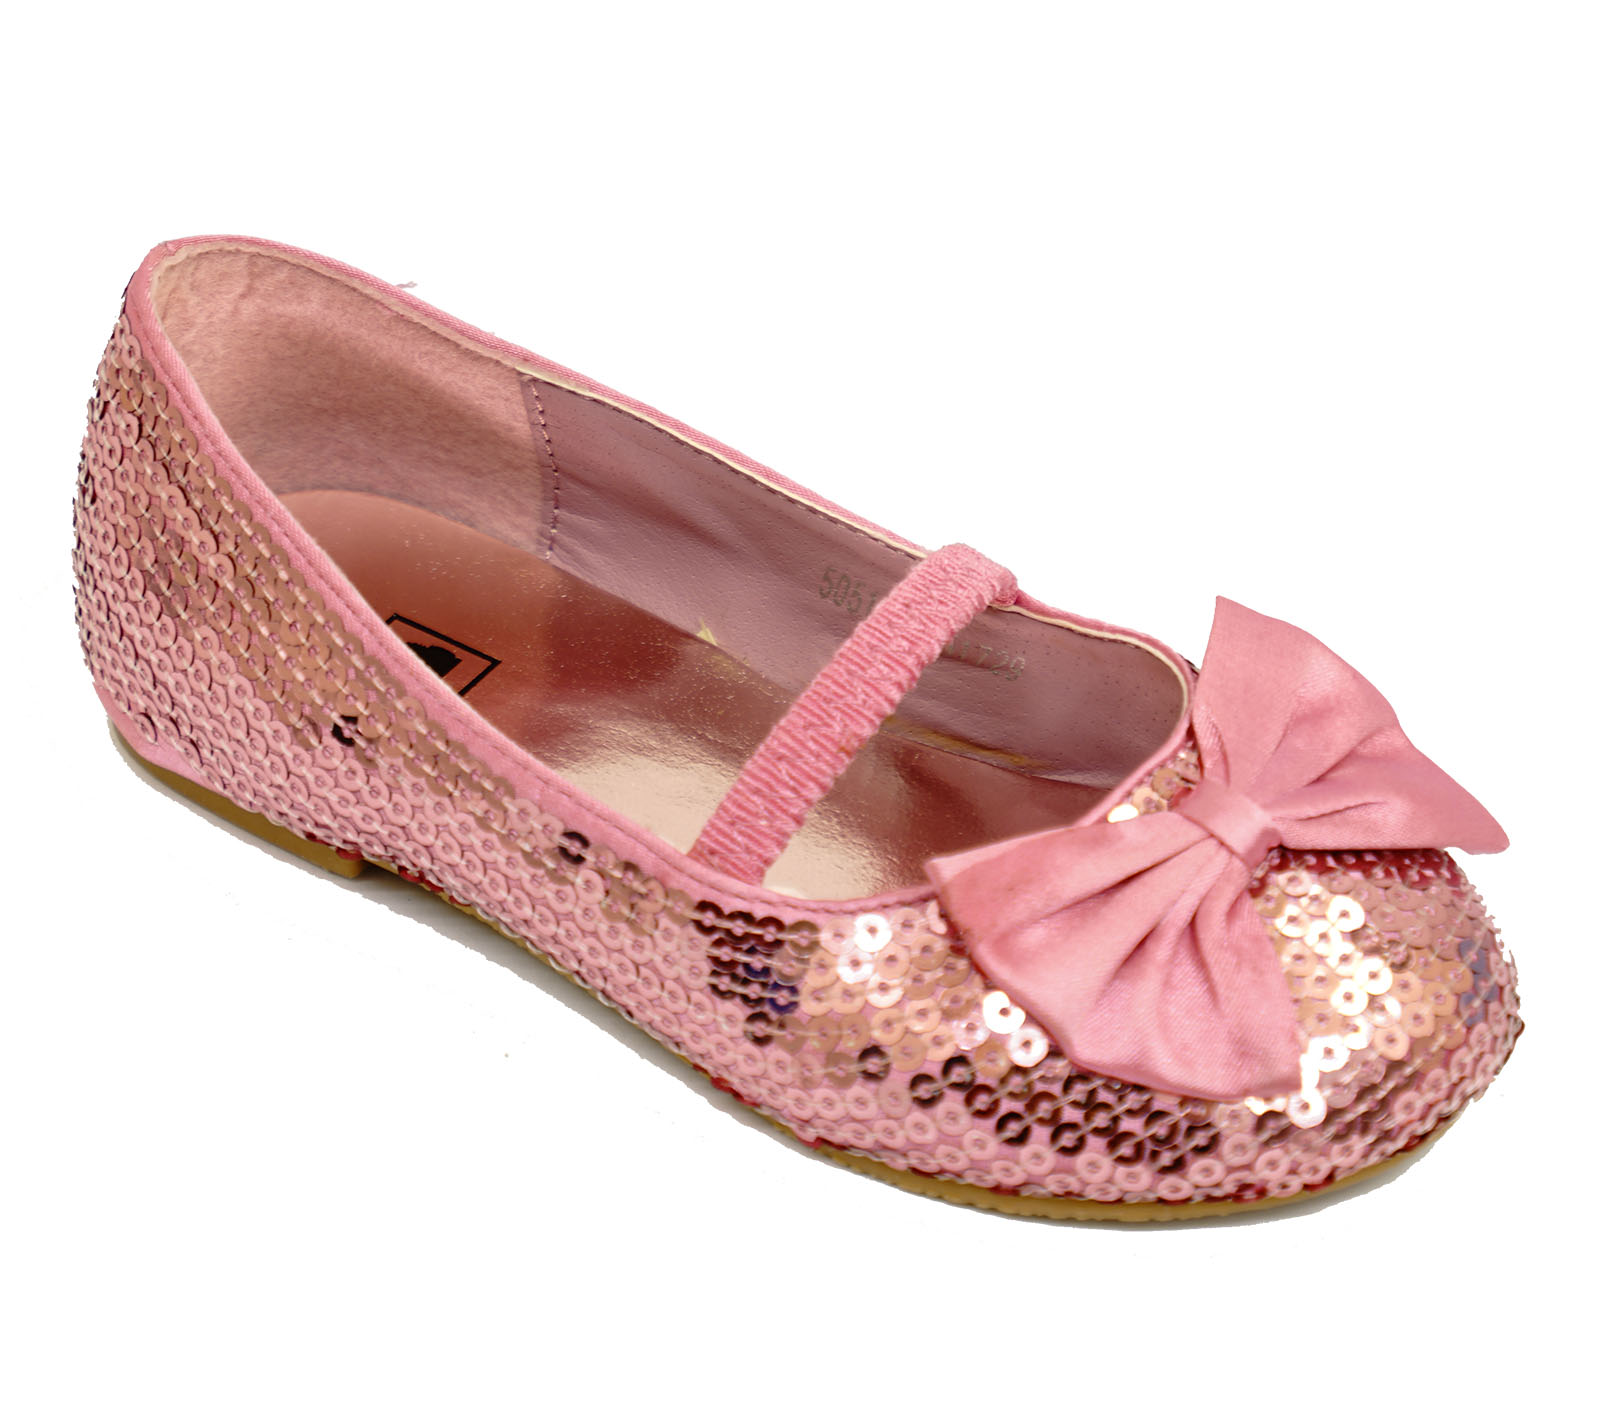 Shop for girls ballet flats online at Target. Free shipping on purchases over $35 and save 5% every day with your Target REDcard.